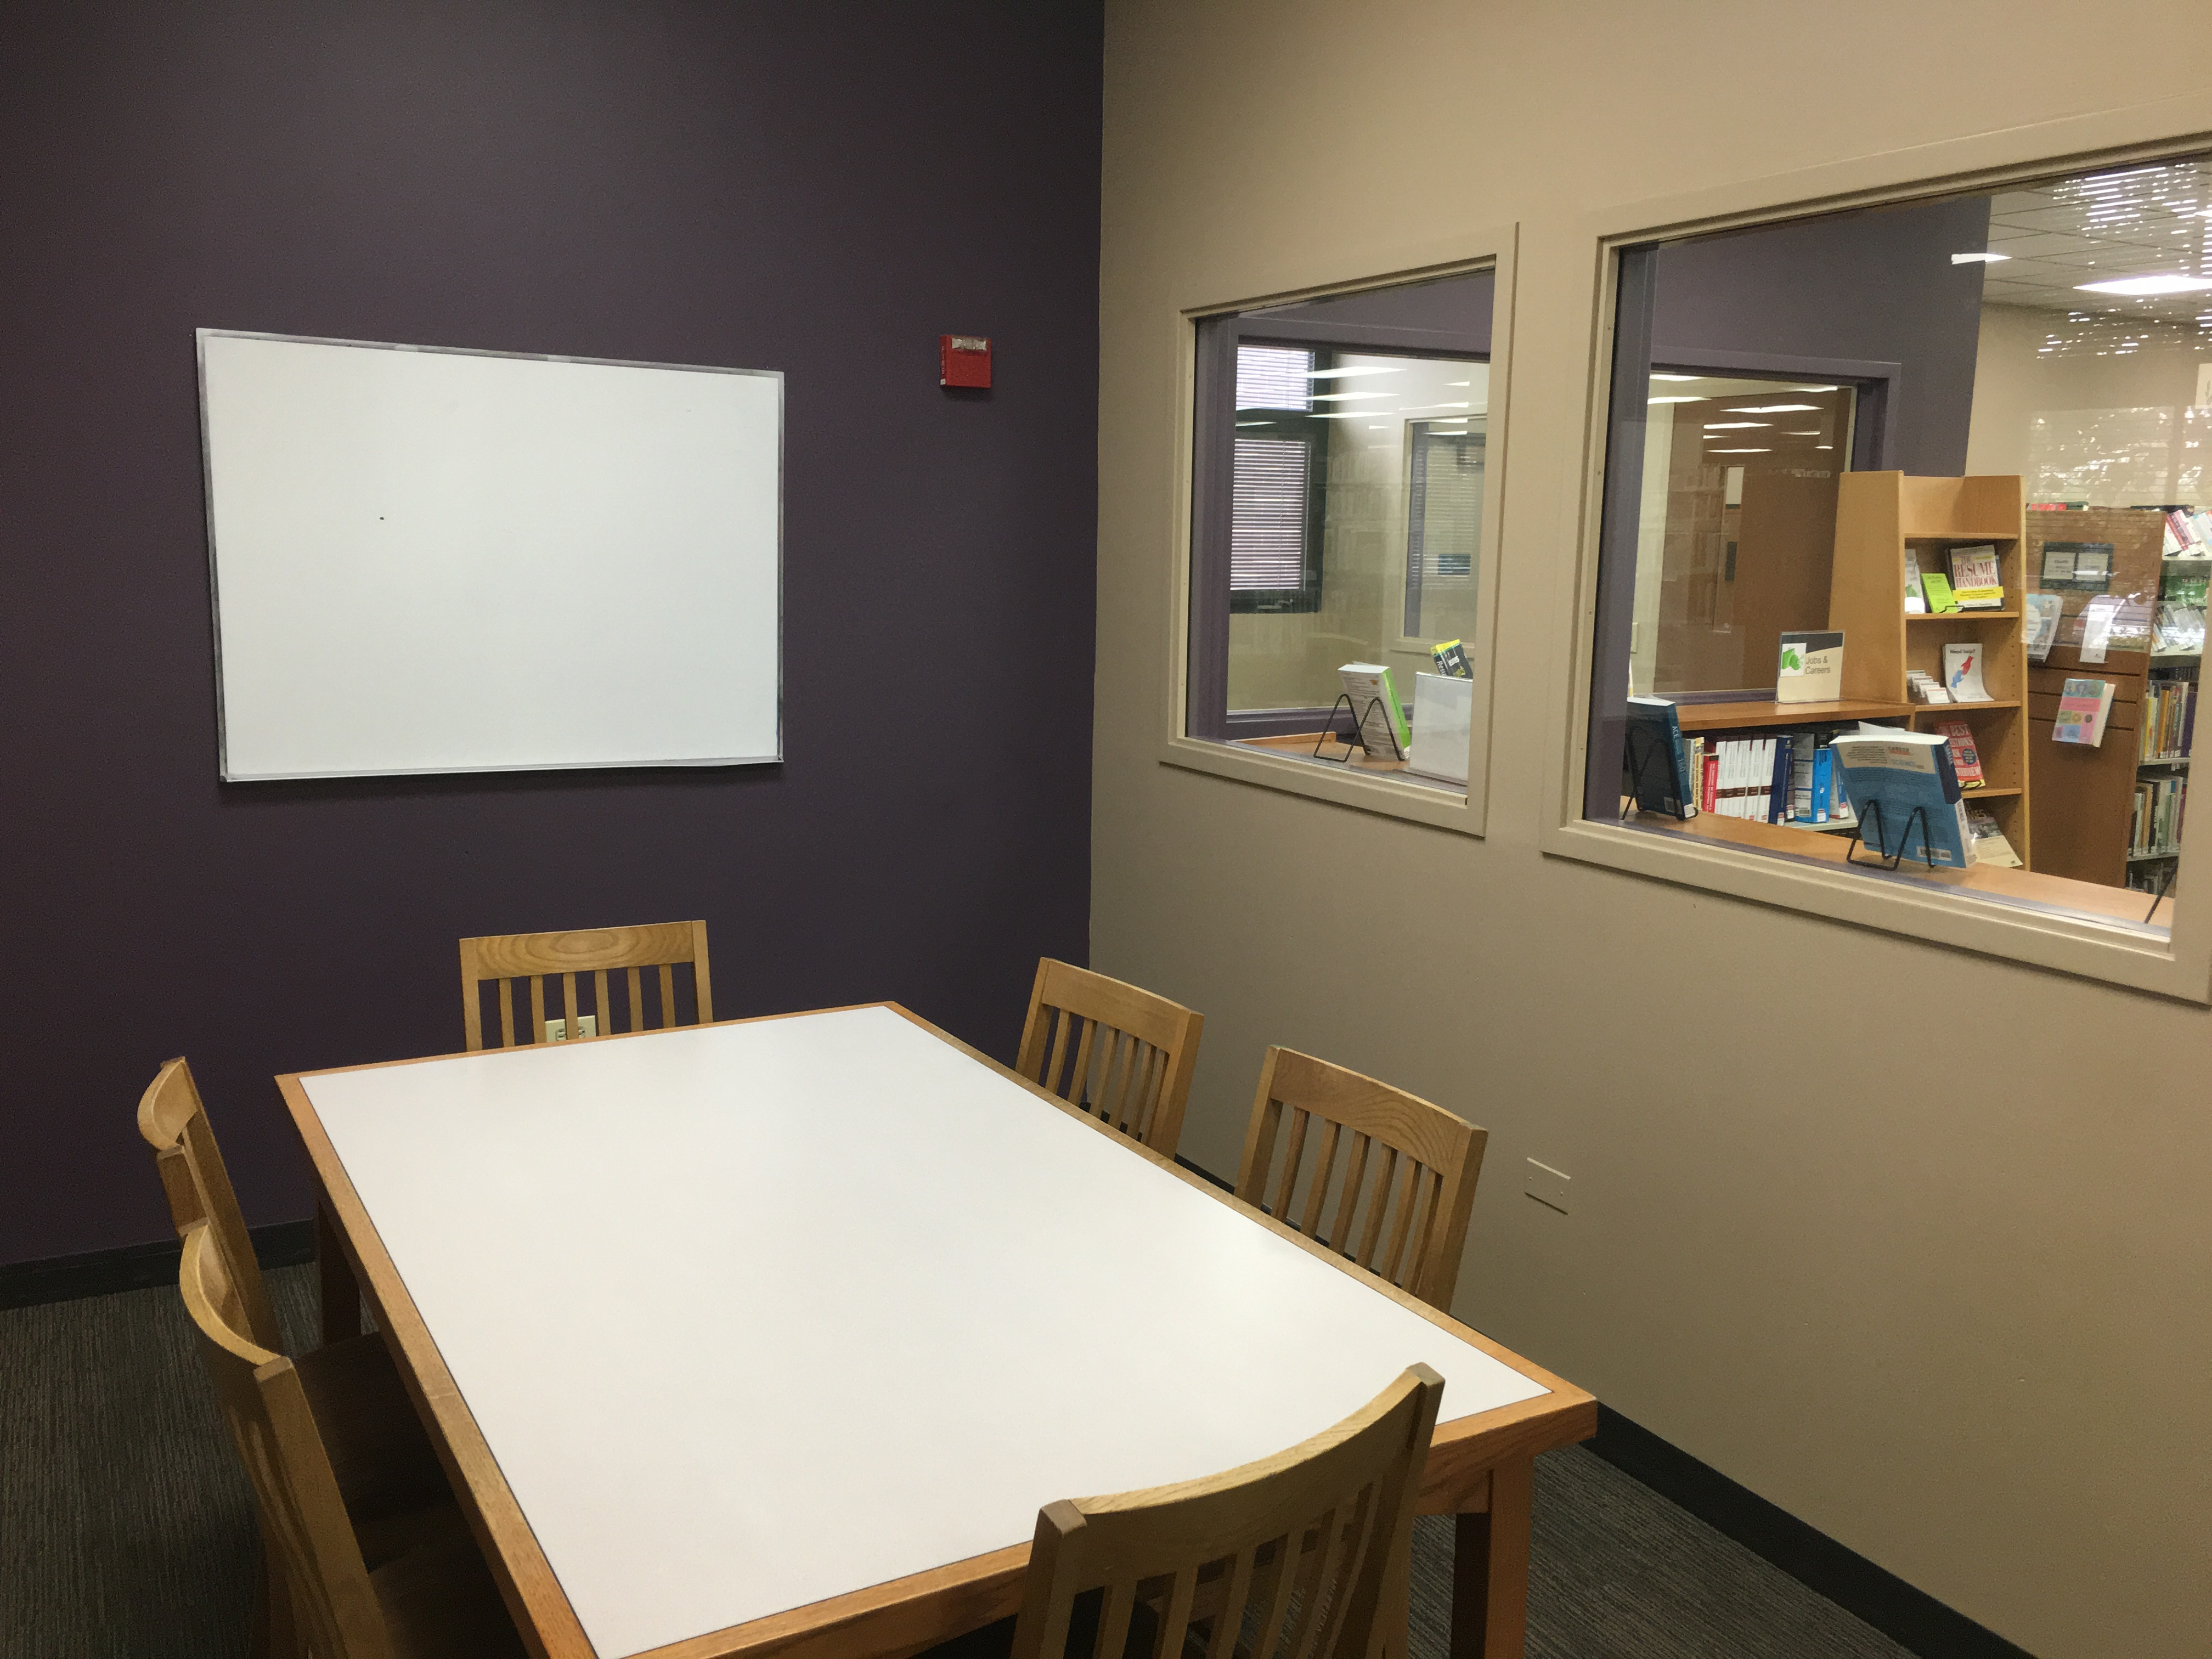 Conference room with tables.